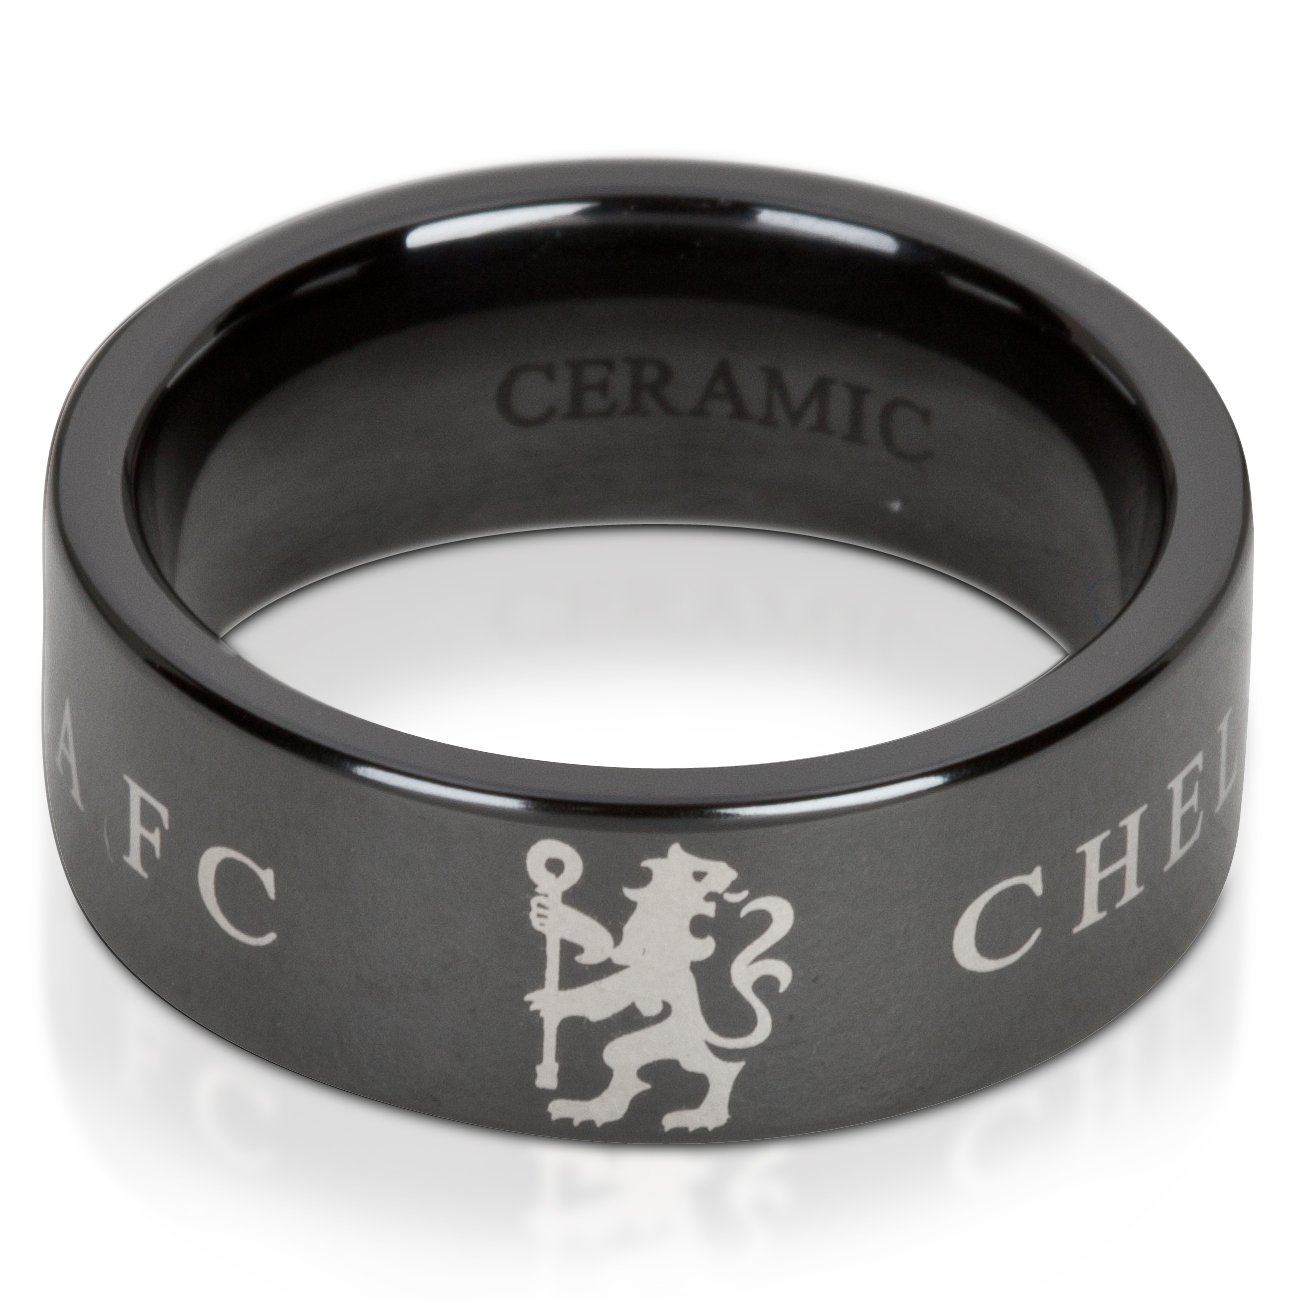 Chelsea Lion Band Ring - Ceramic